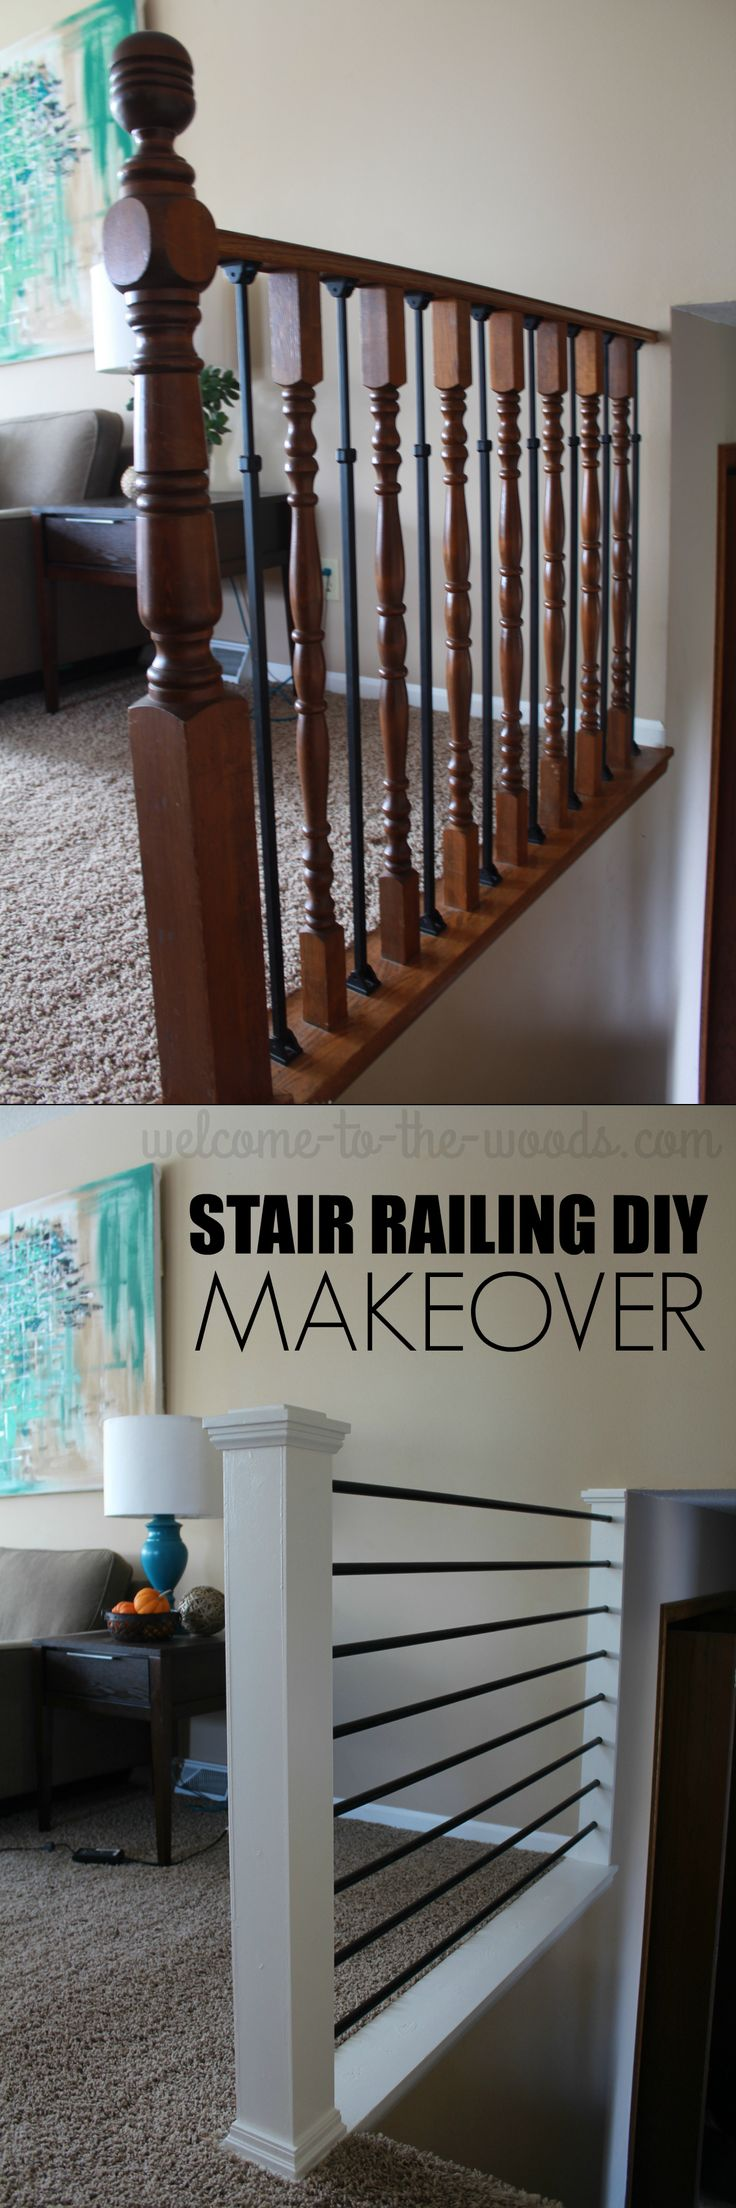 Alternating tread stair revit home design ideas - Before And After Stair Railing Diy Makeover This Mommy Blogger Transformed An Outdated Oak Baluster